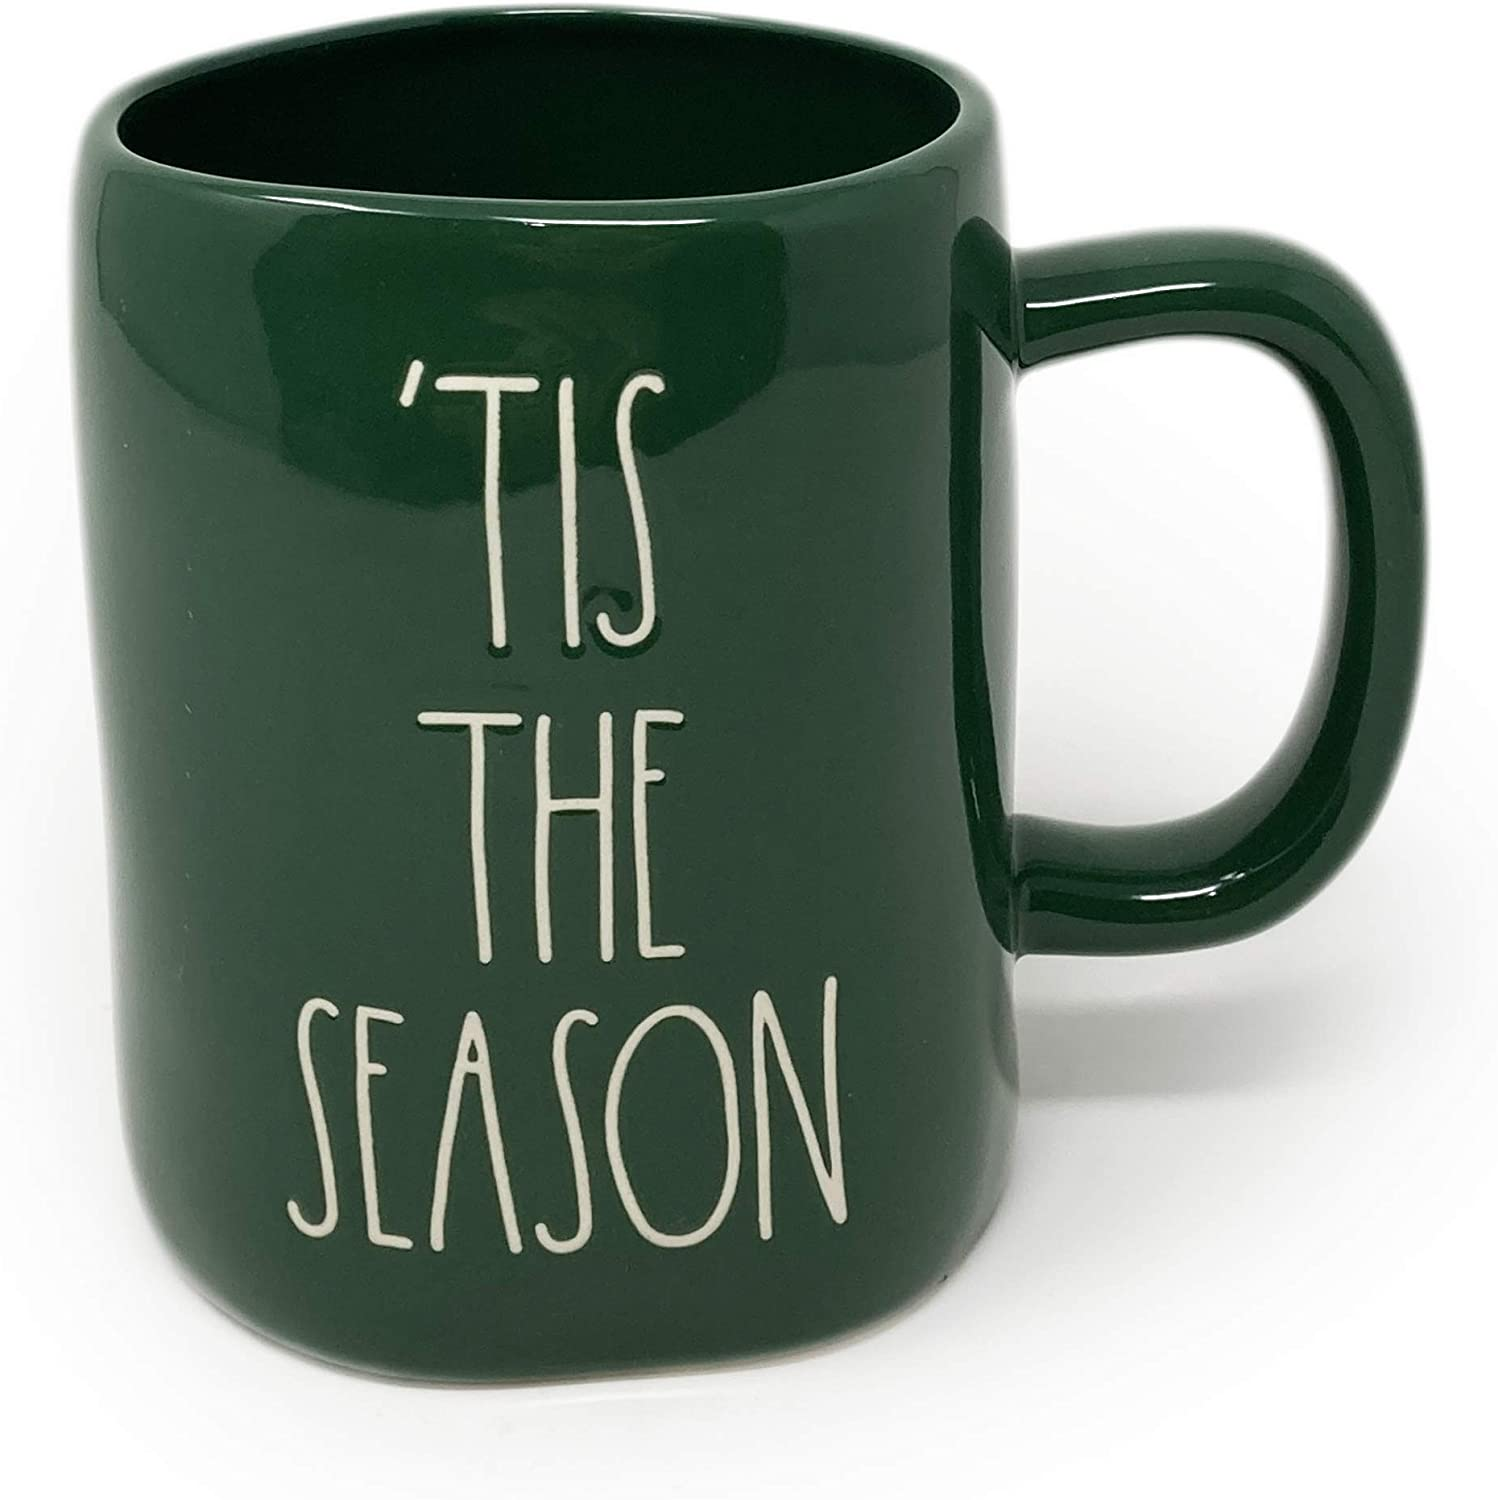 Details about  /Rae Dunn Stainless Christmas Holiday Traveler Tumbler Lid Green FA LA LA  NWT